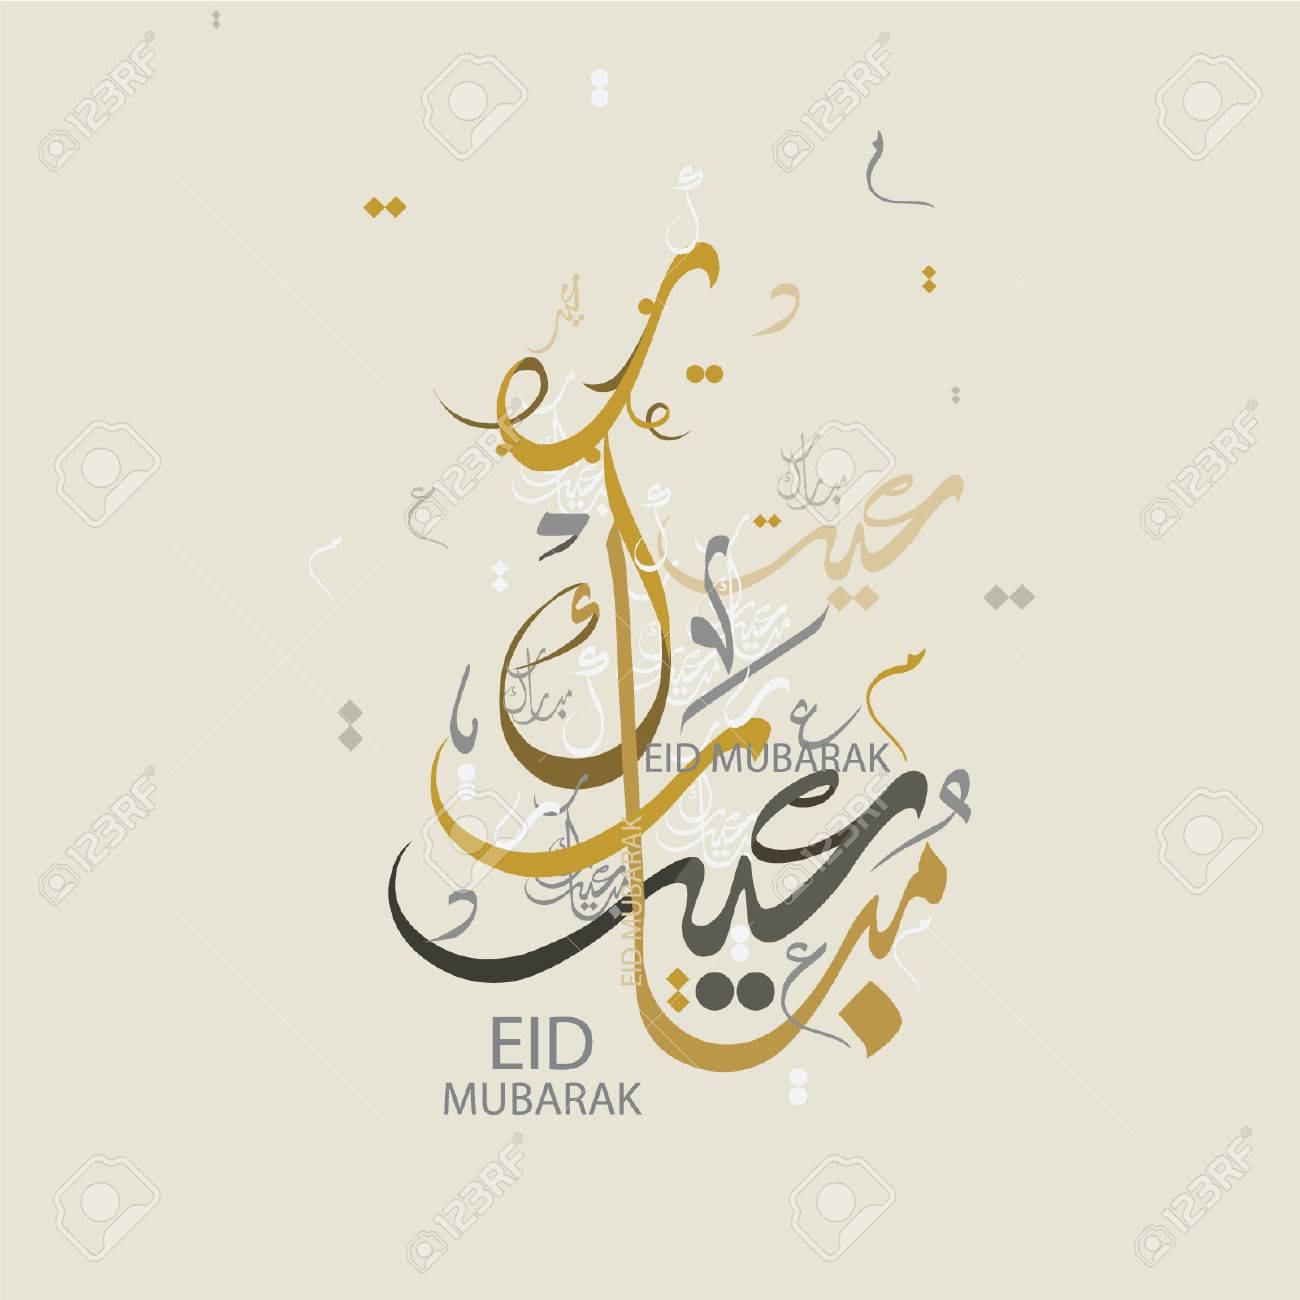 Eid Mubarak Greeting With Arabic Calligraphy Royalty Free Cliparts